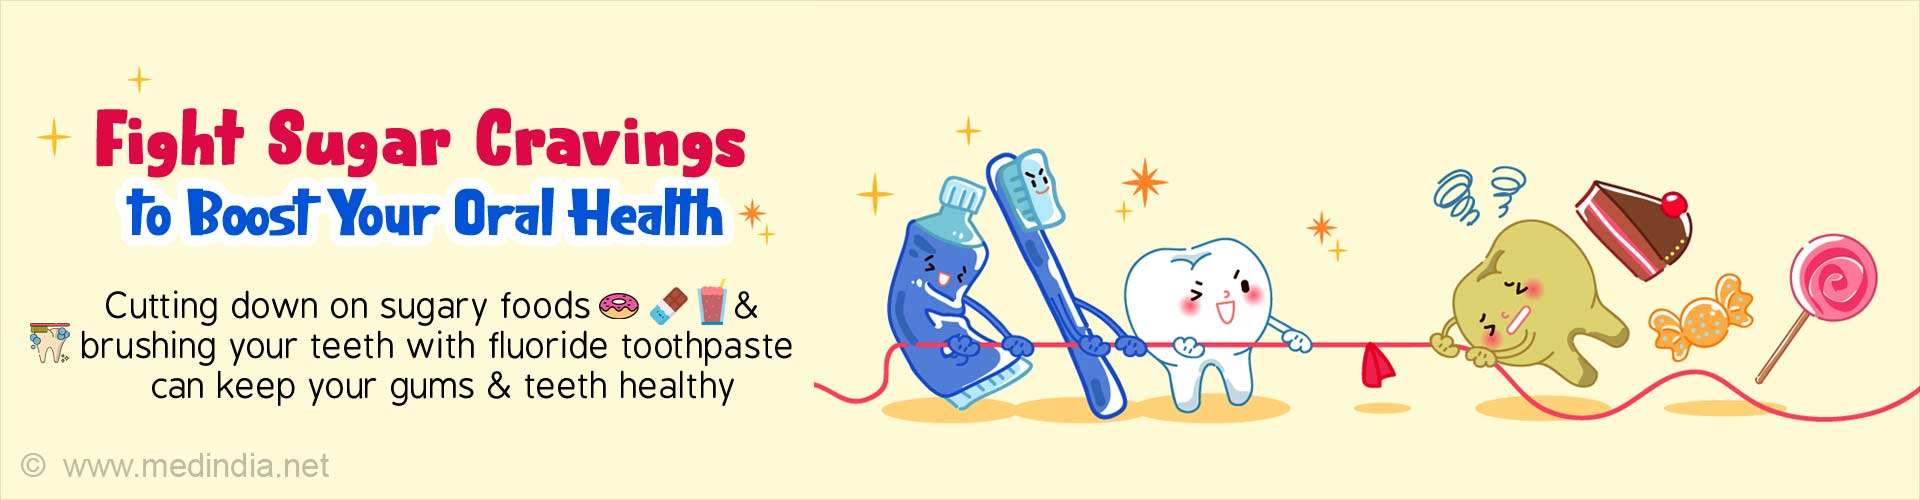 Fight sugar cravings to boost your oral health. Cutting down on sugary foods and brushing your teeth with fluoride toothpaste can keep your gums and teeth healthy.